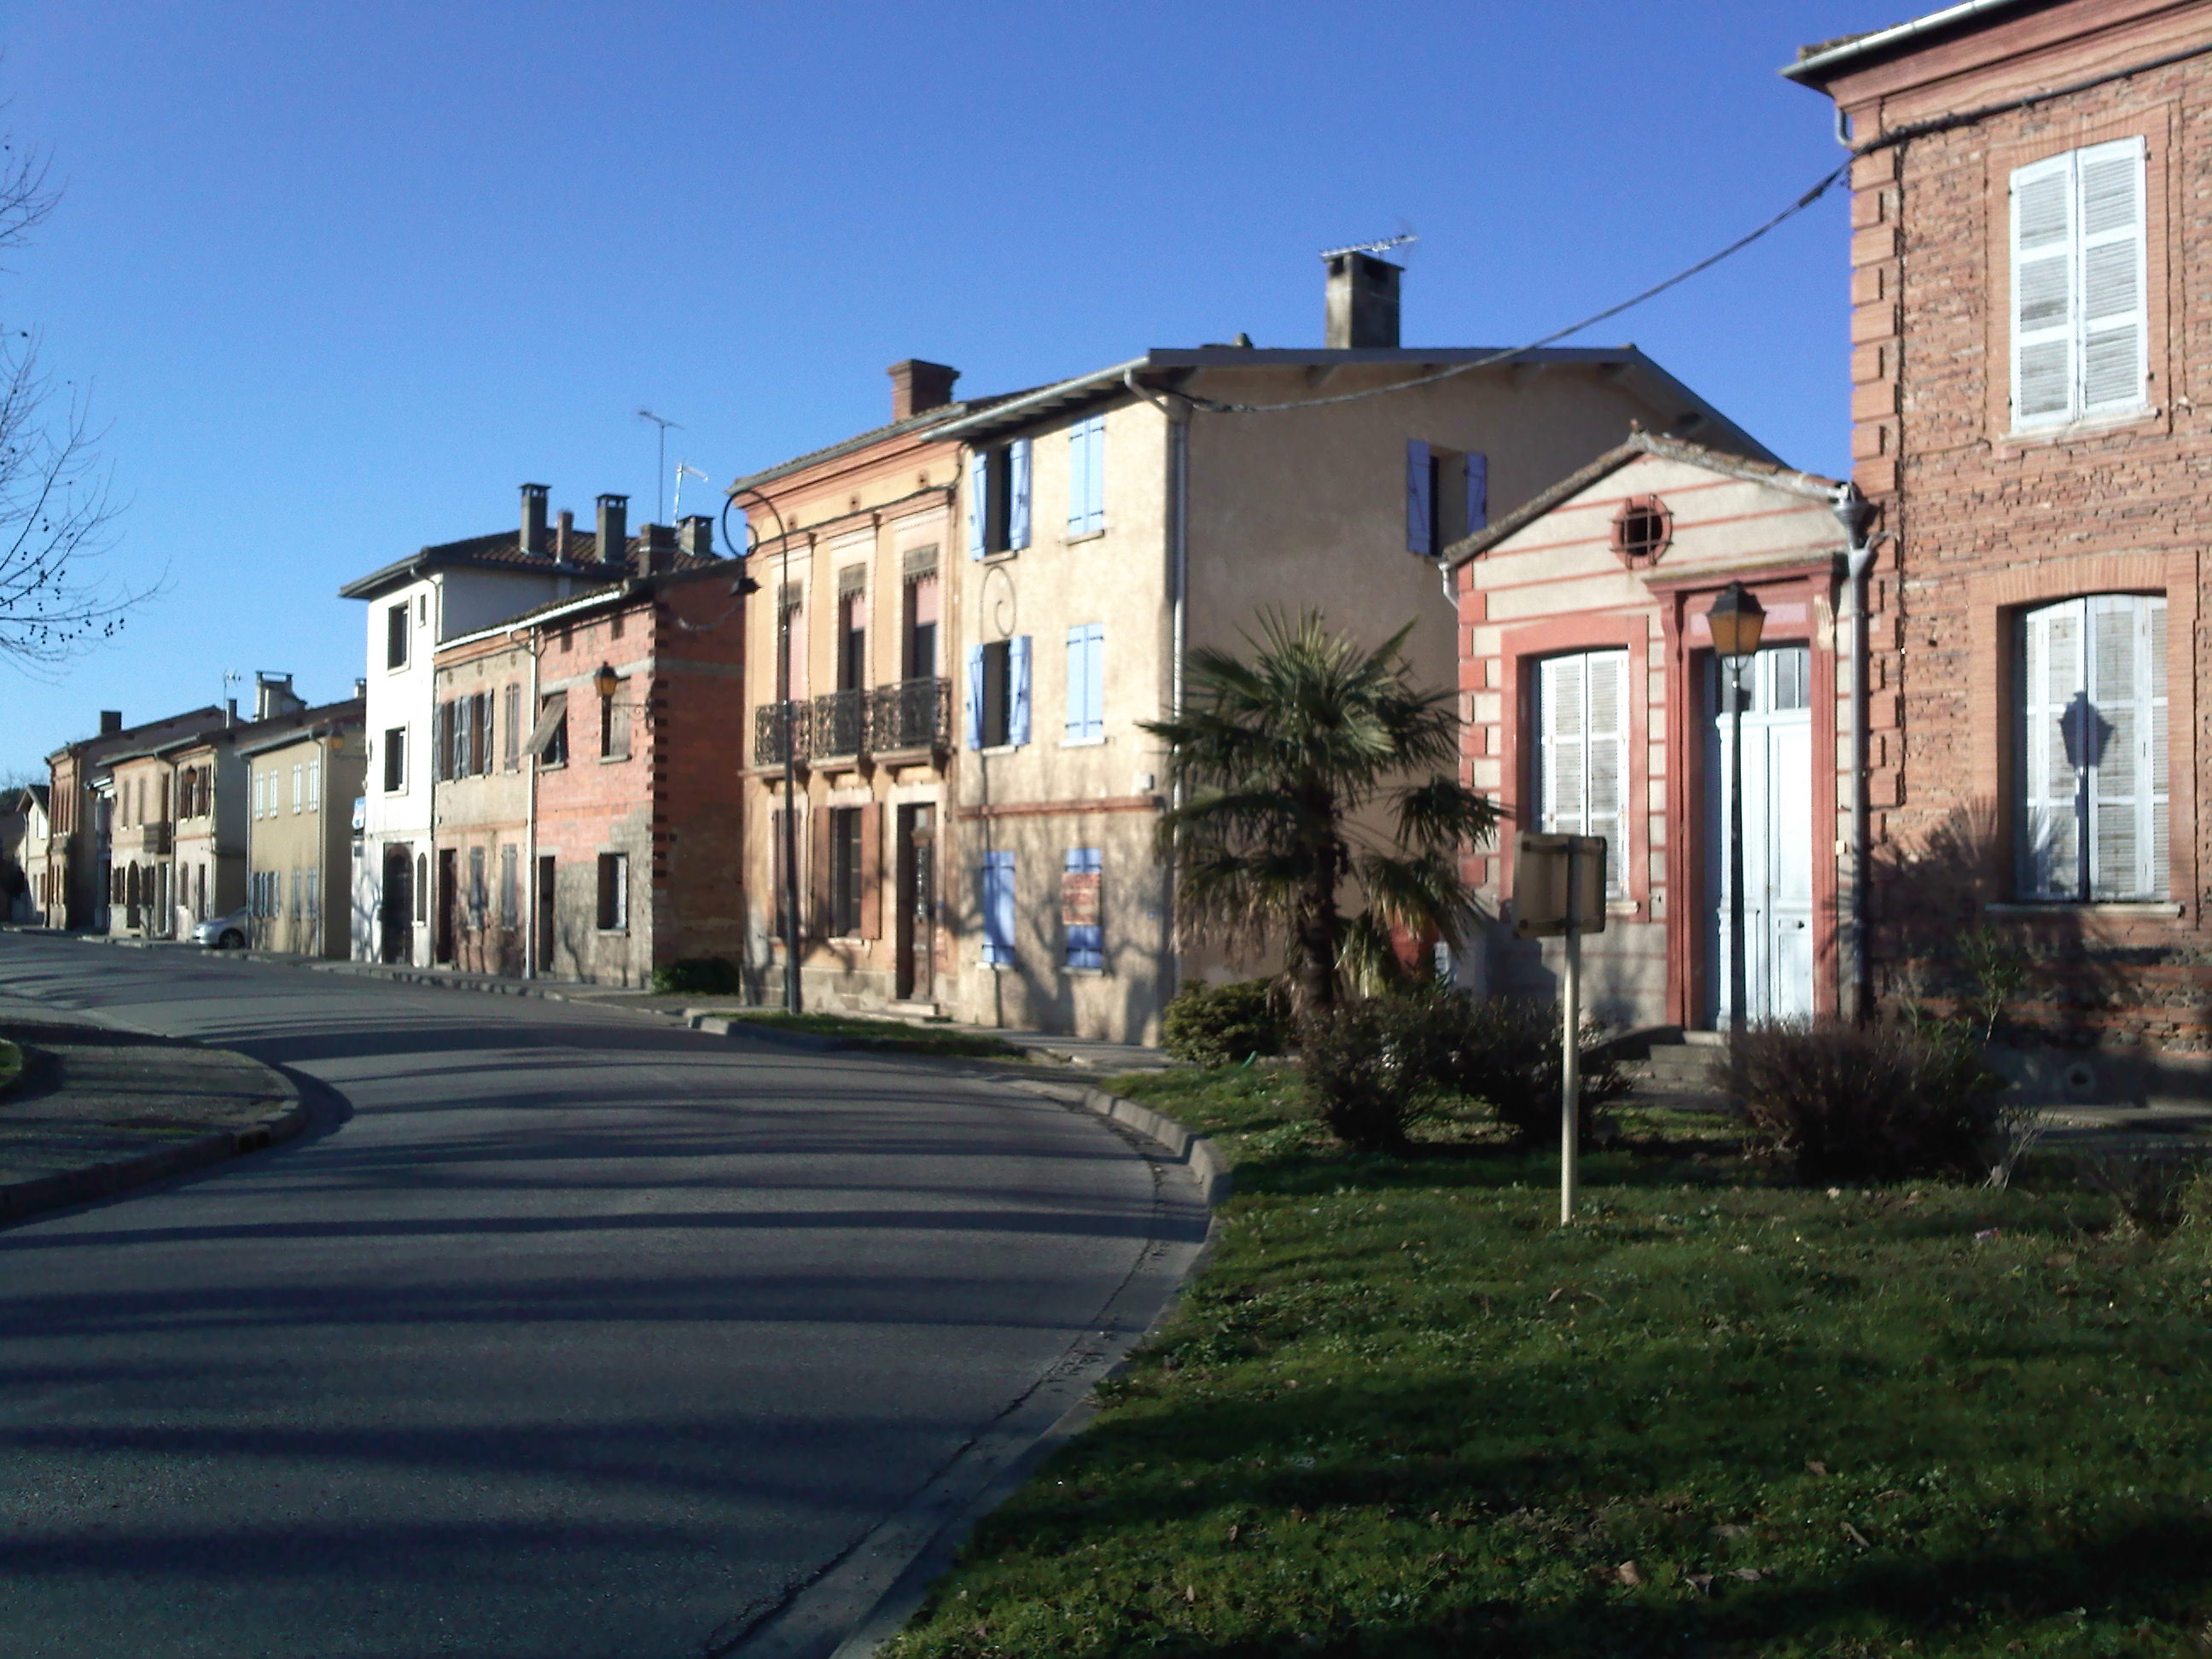 St Clar : la place du village